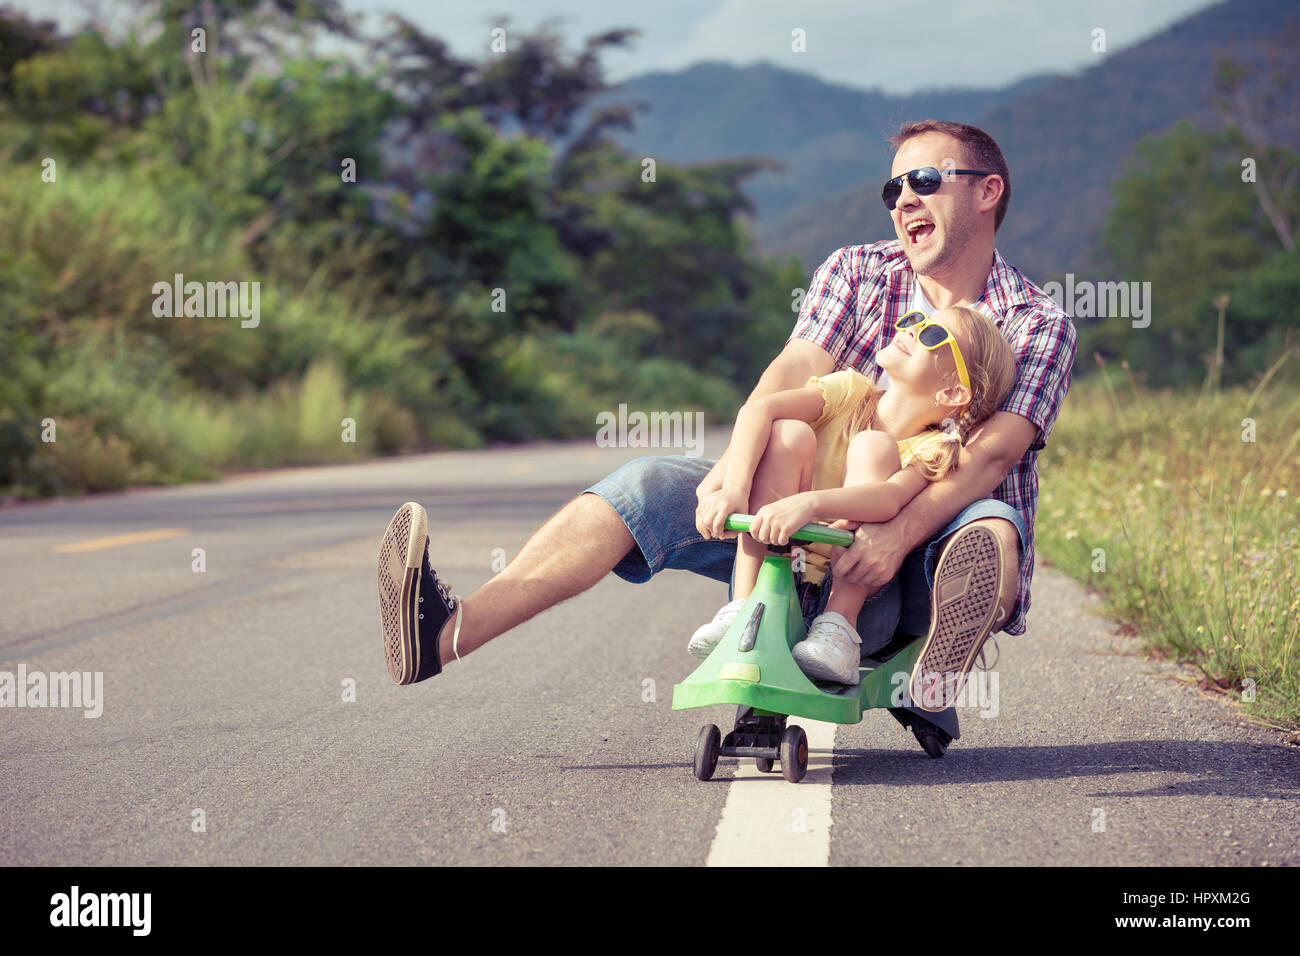 Father and daughter playing  on the road at the day time.  Concept of friendly family. - Stock Image